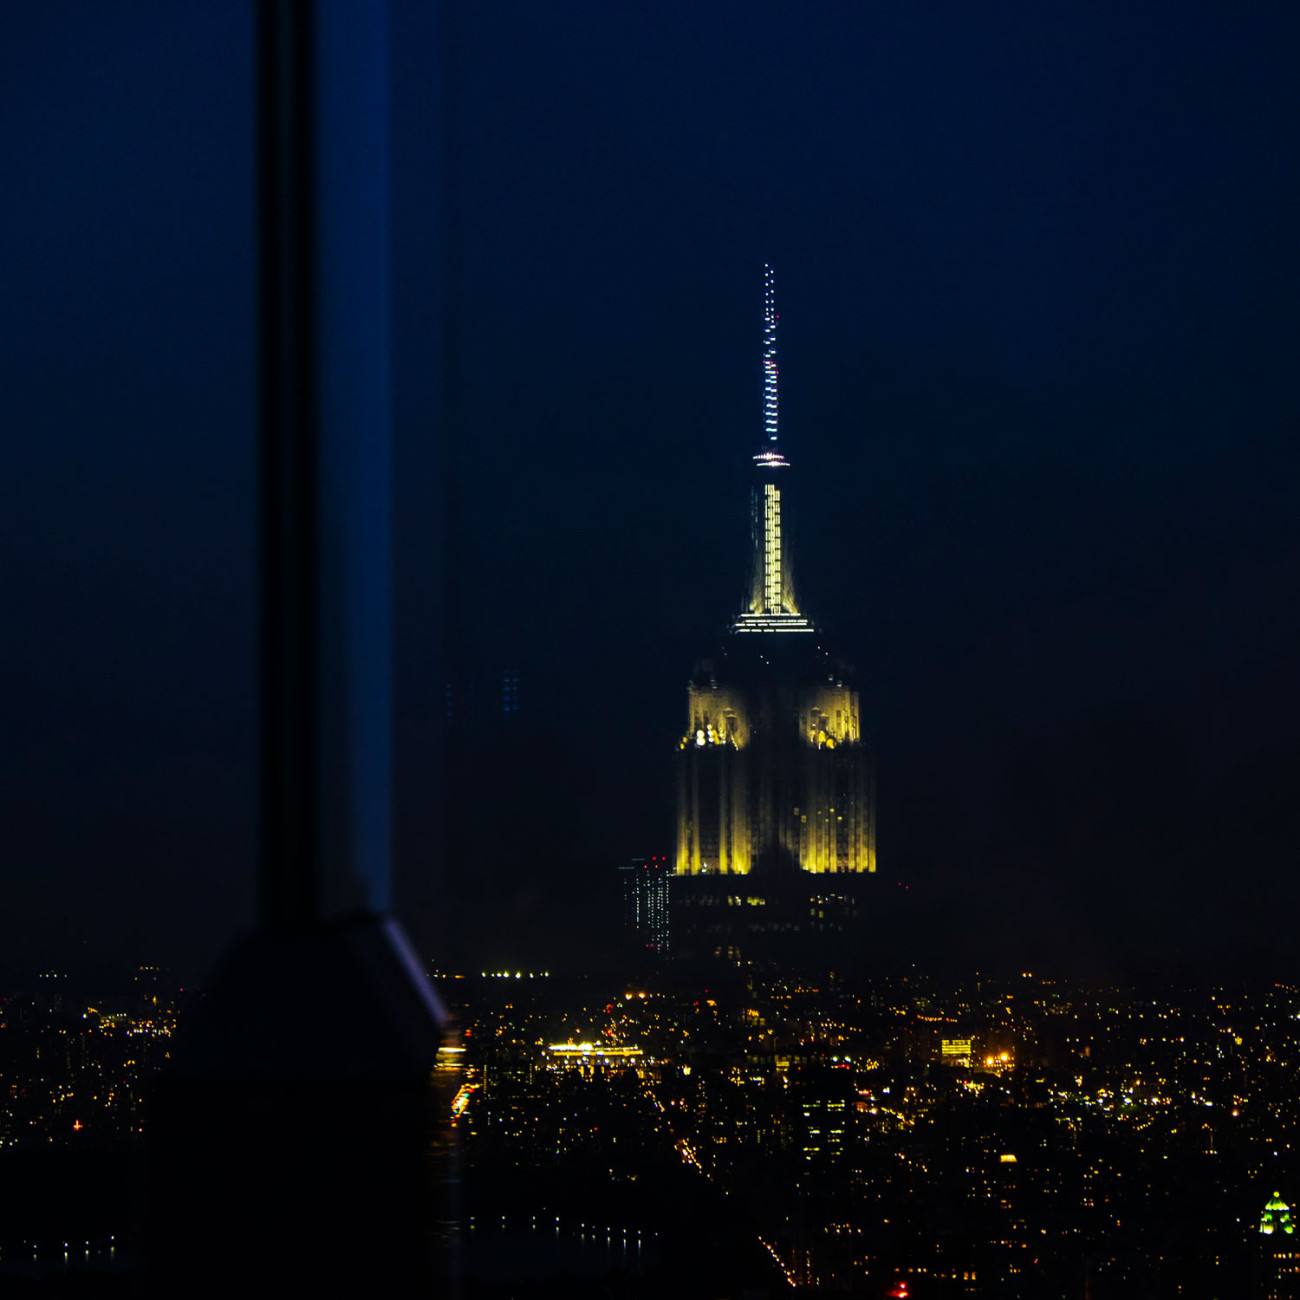 Empire State Building over the city, NY, 2014